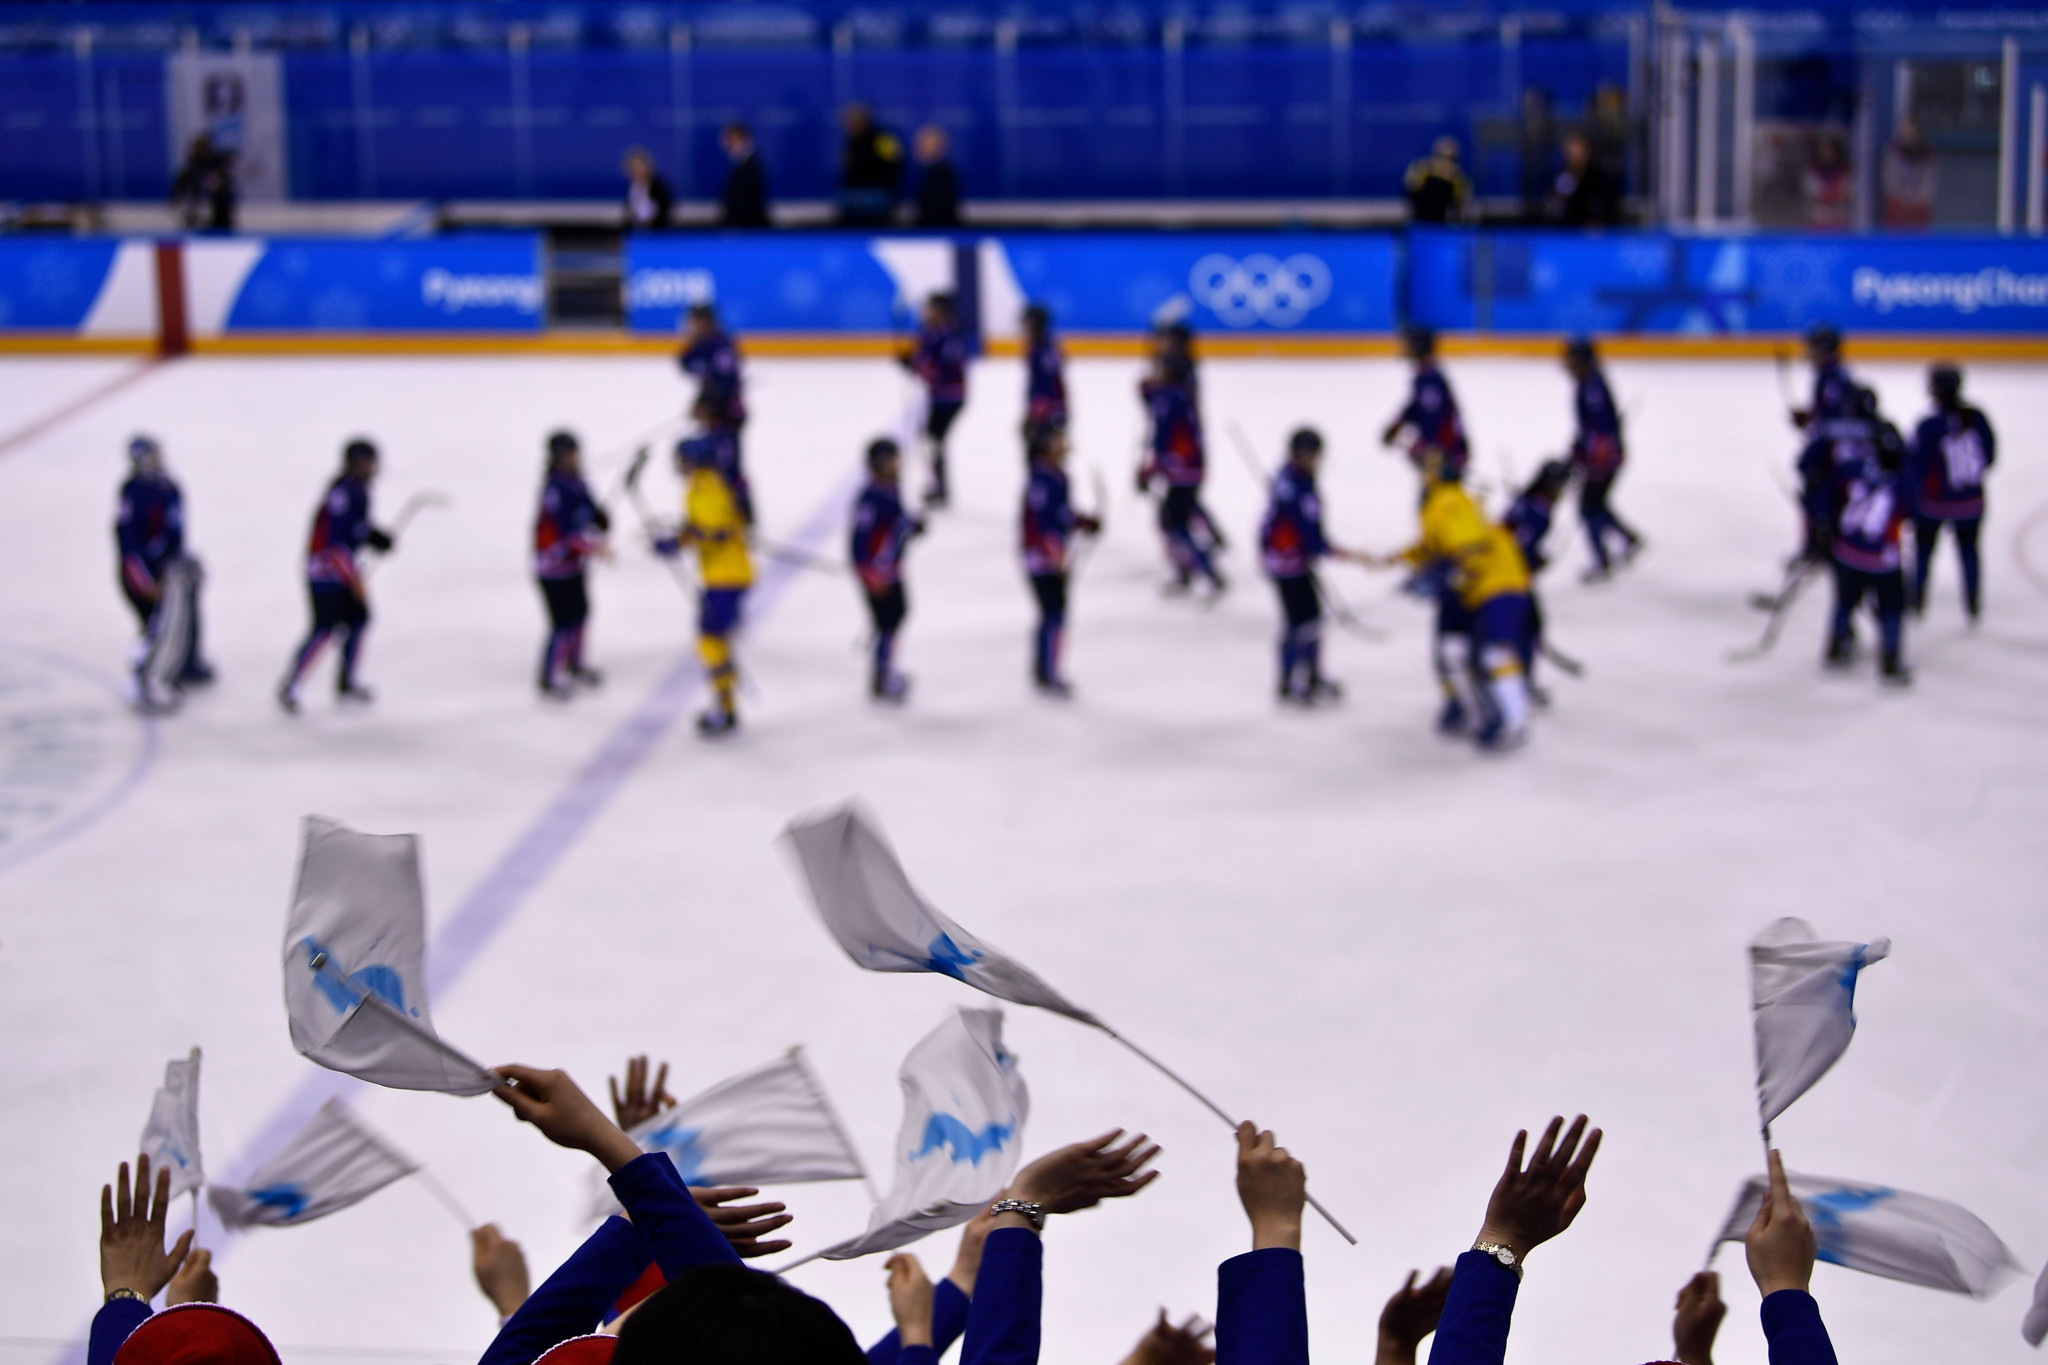 The Olympic Channel are looking to produce a film on the joint team which competed at Pyeongchang 2018 ©Getty Images